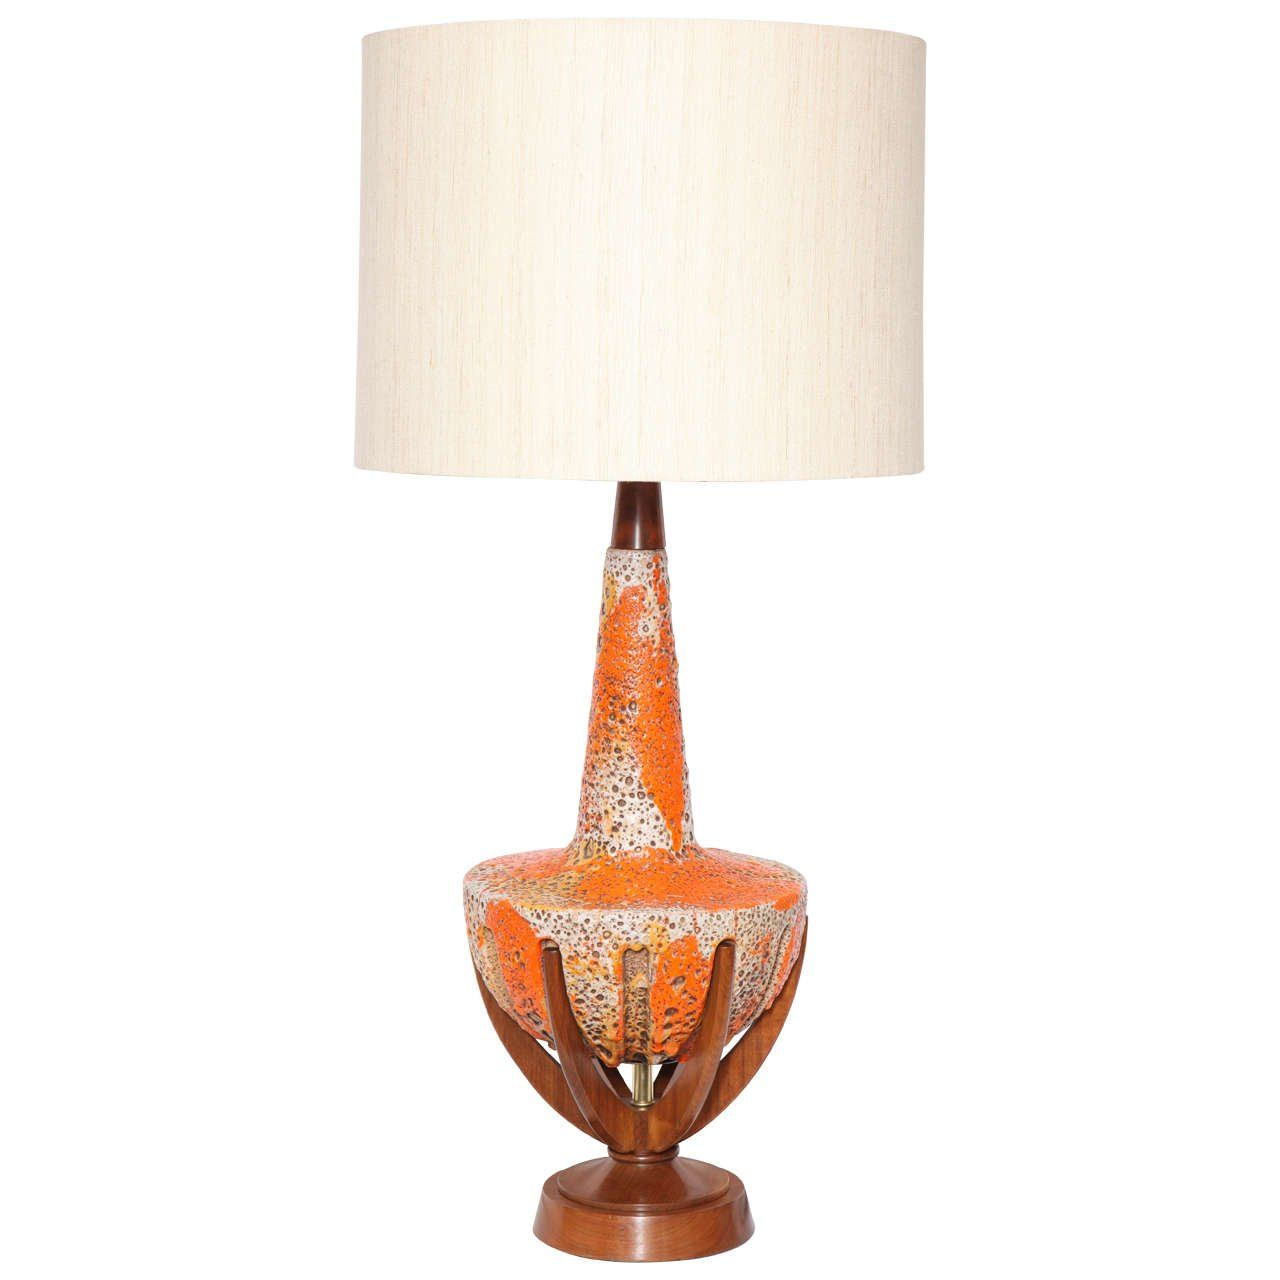 Antique wood table lamps - 1950s Modernist Ceramic And Wood Table Lamp